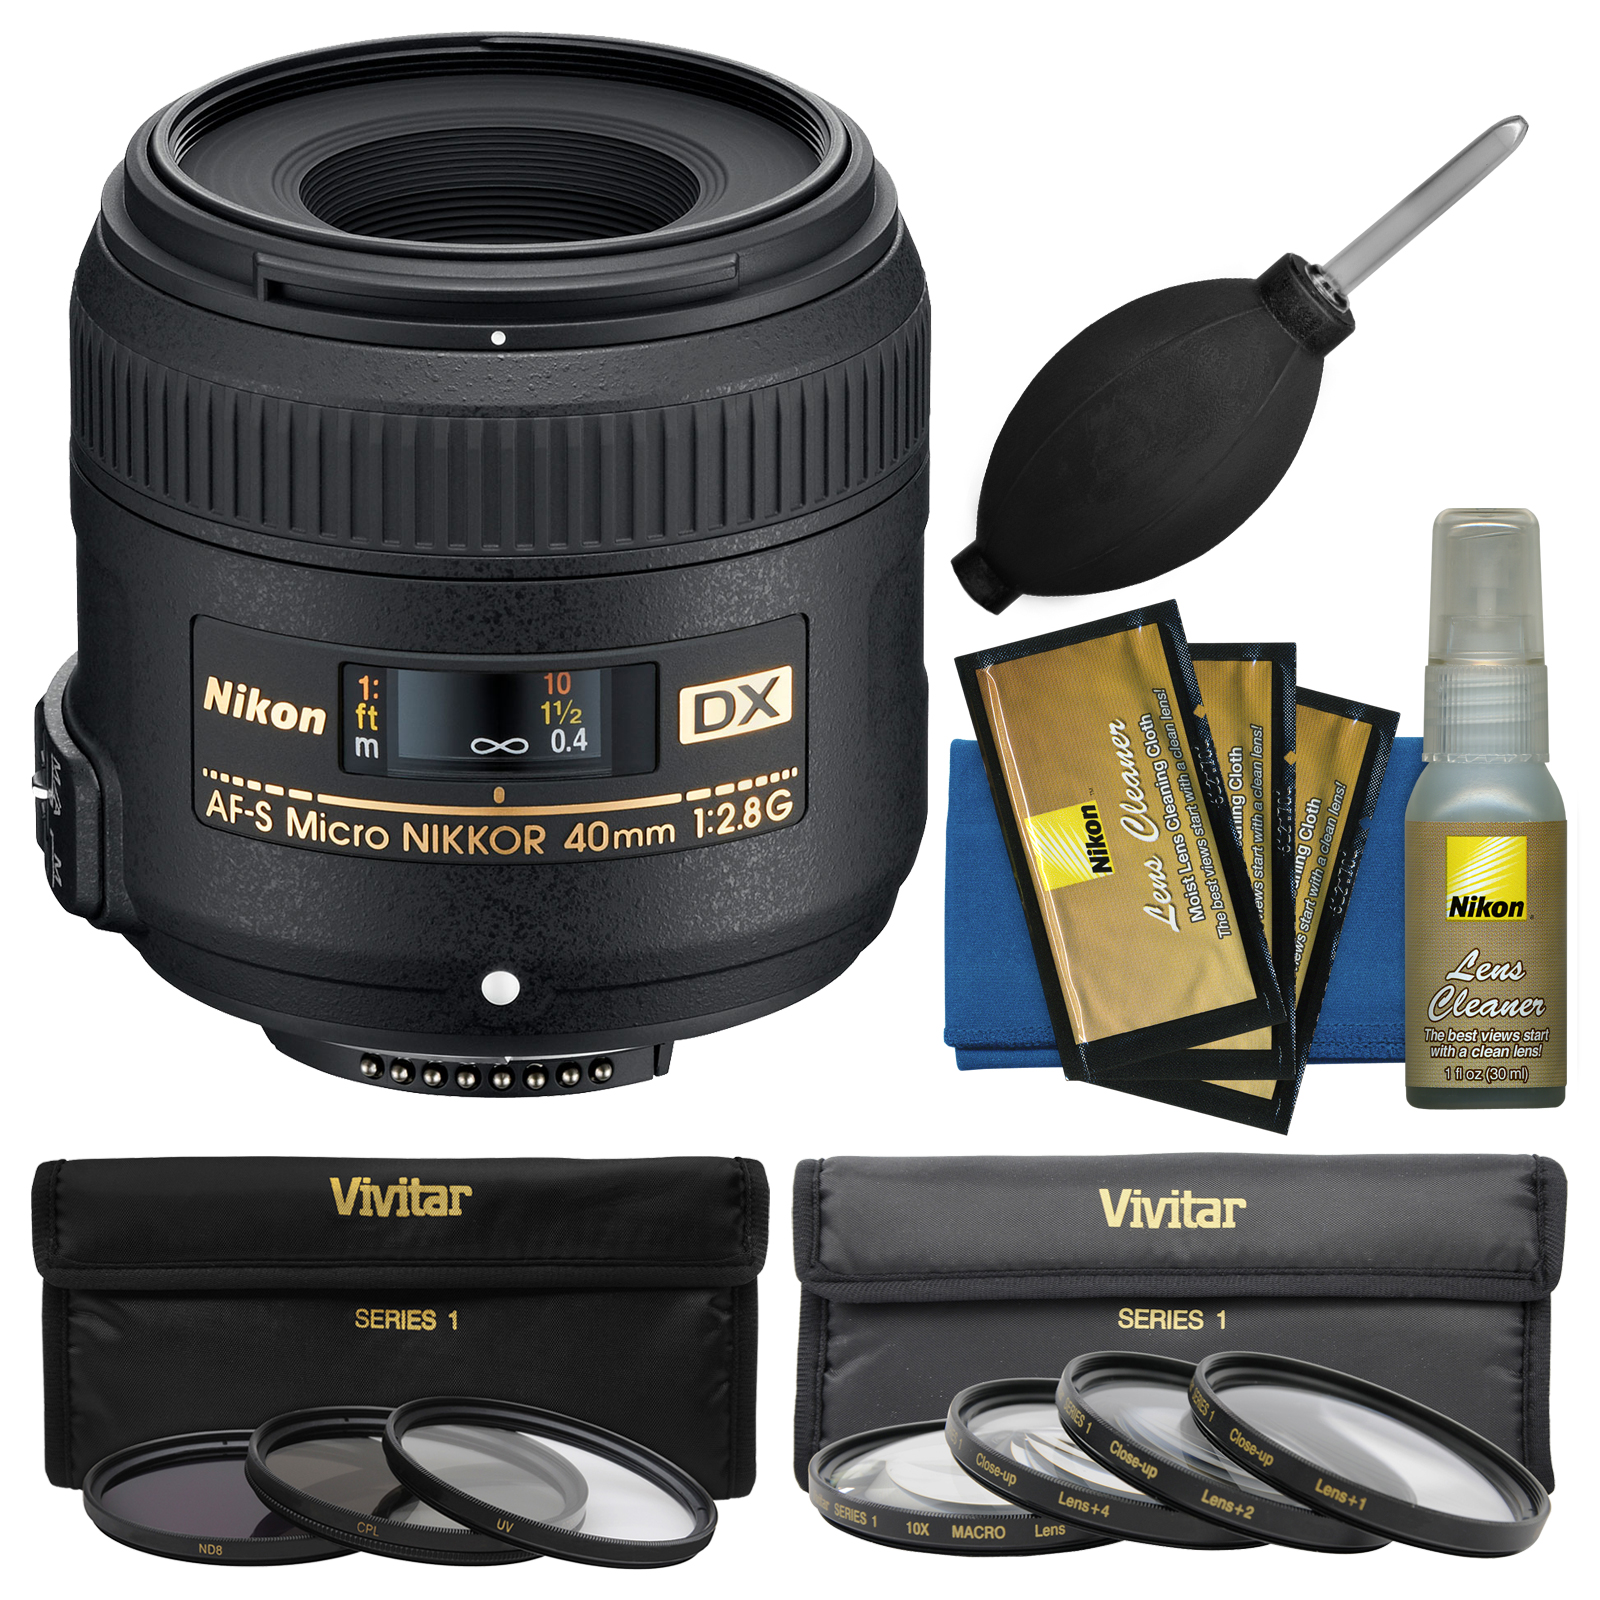 Nikon 40mm f/2.8 G DX AF-S Micro-Nikkor Lens + 7 UV/CPL/ND8 & Close-up Filters + Cleaning Kit for D3200, D3300, D5300, D5500, D7100, D7200 Camera